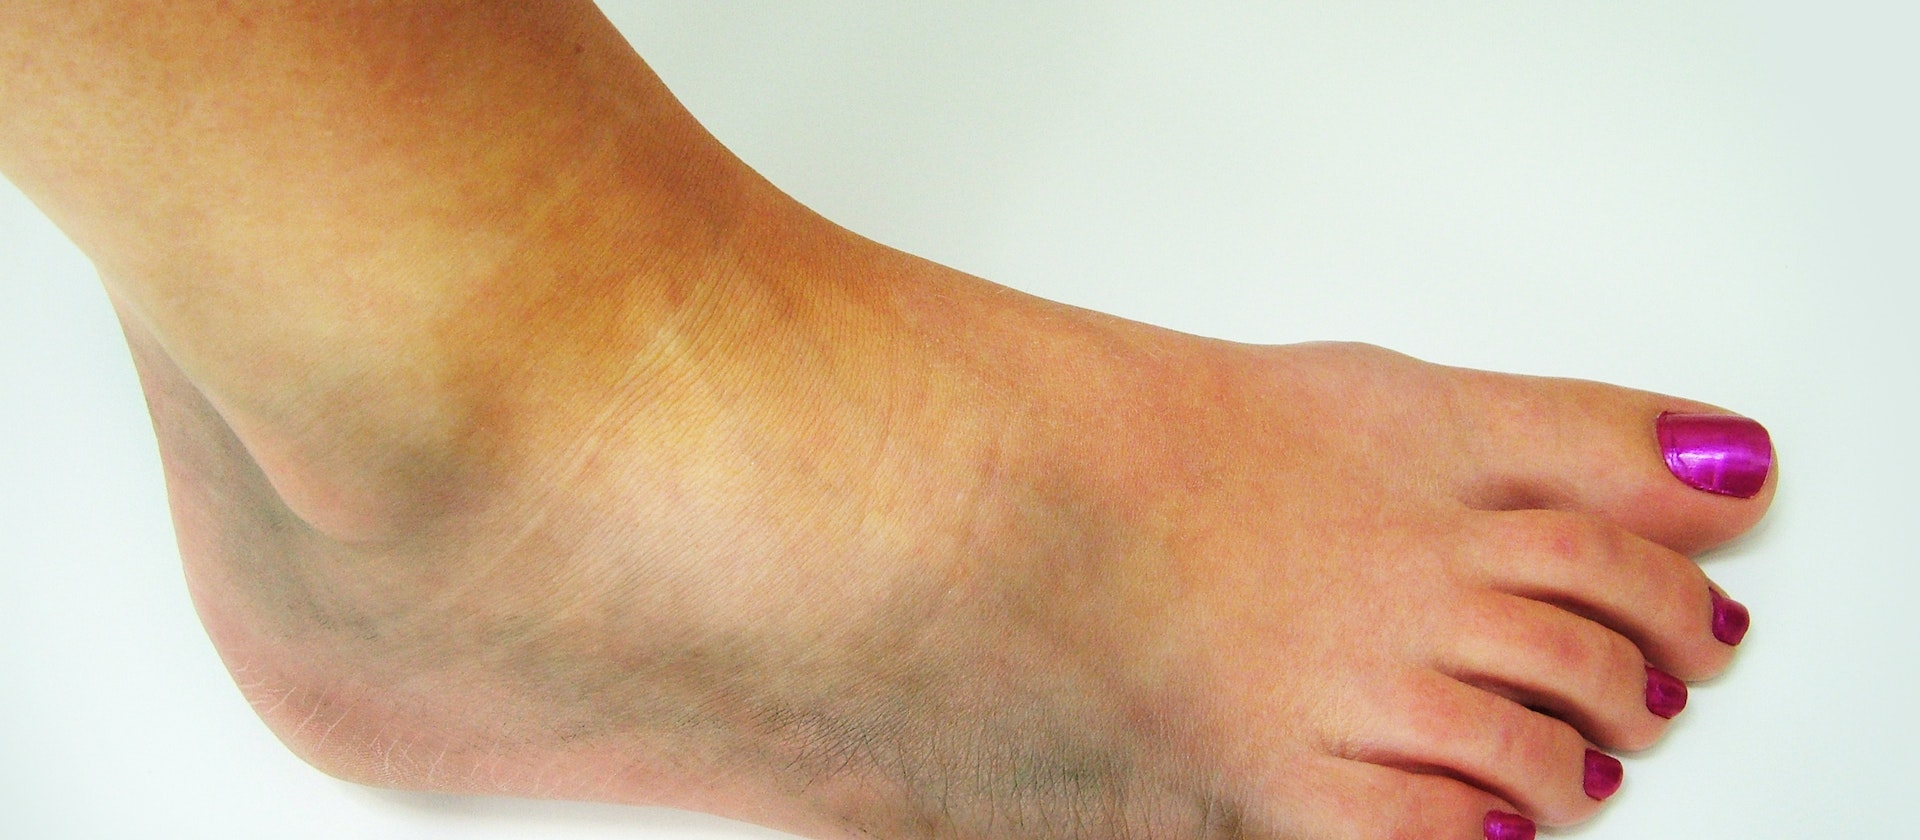 foot bruise symptoms, causes & common questions | buoy